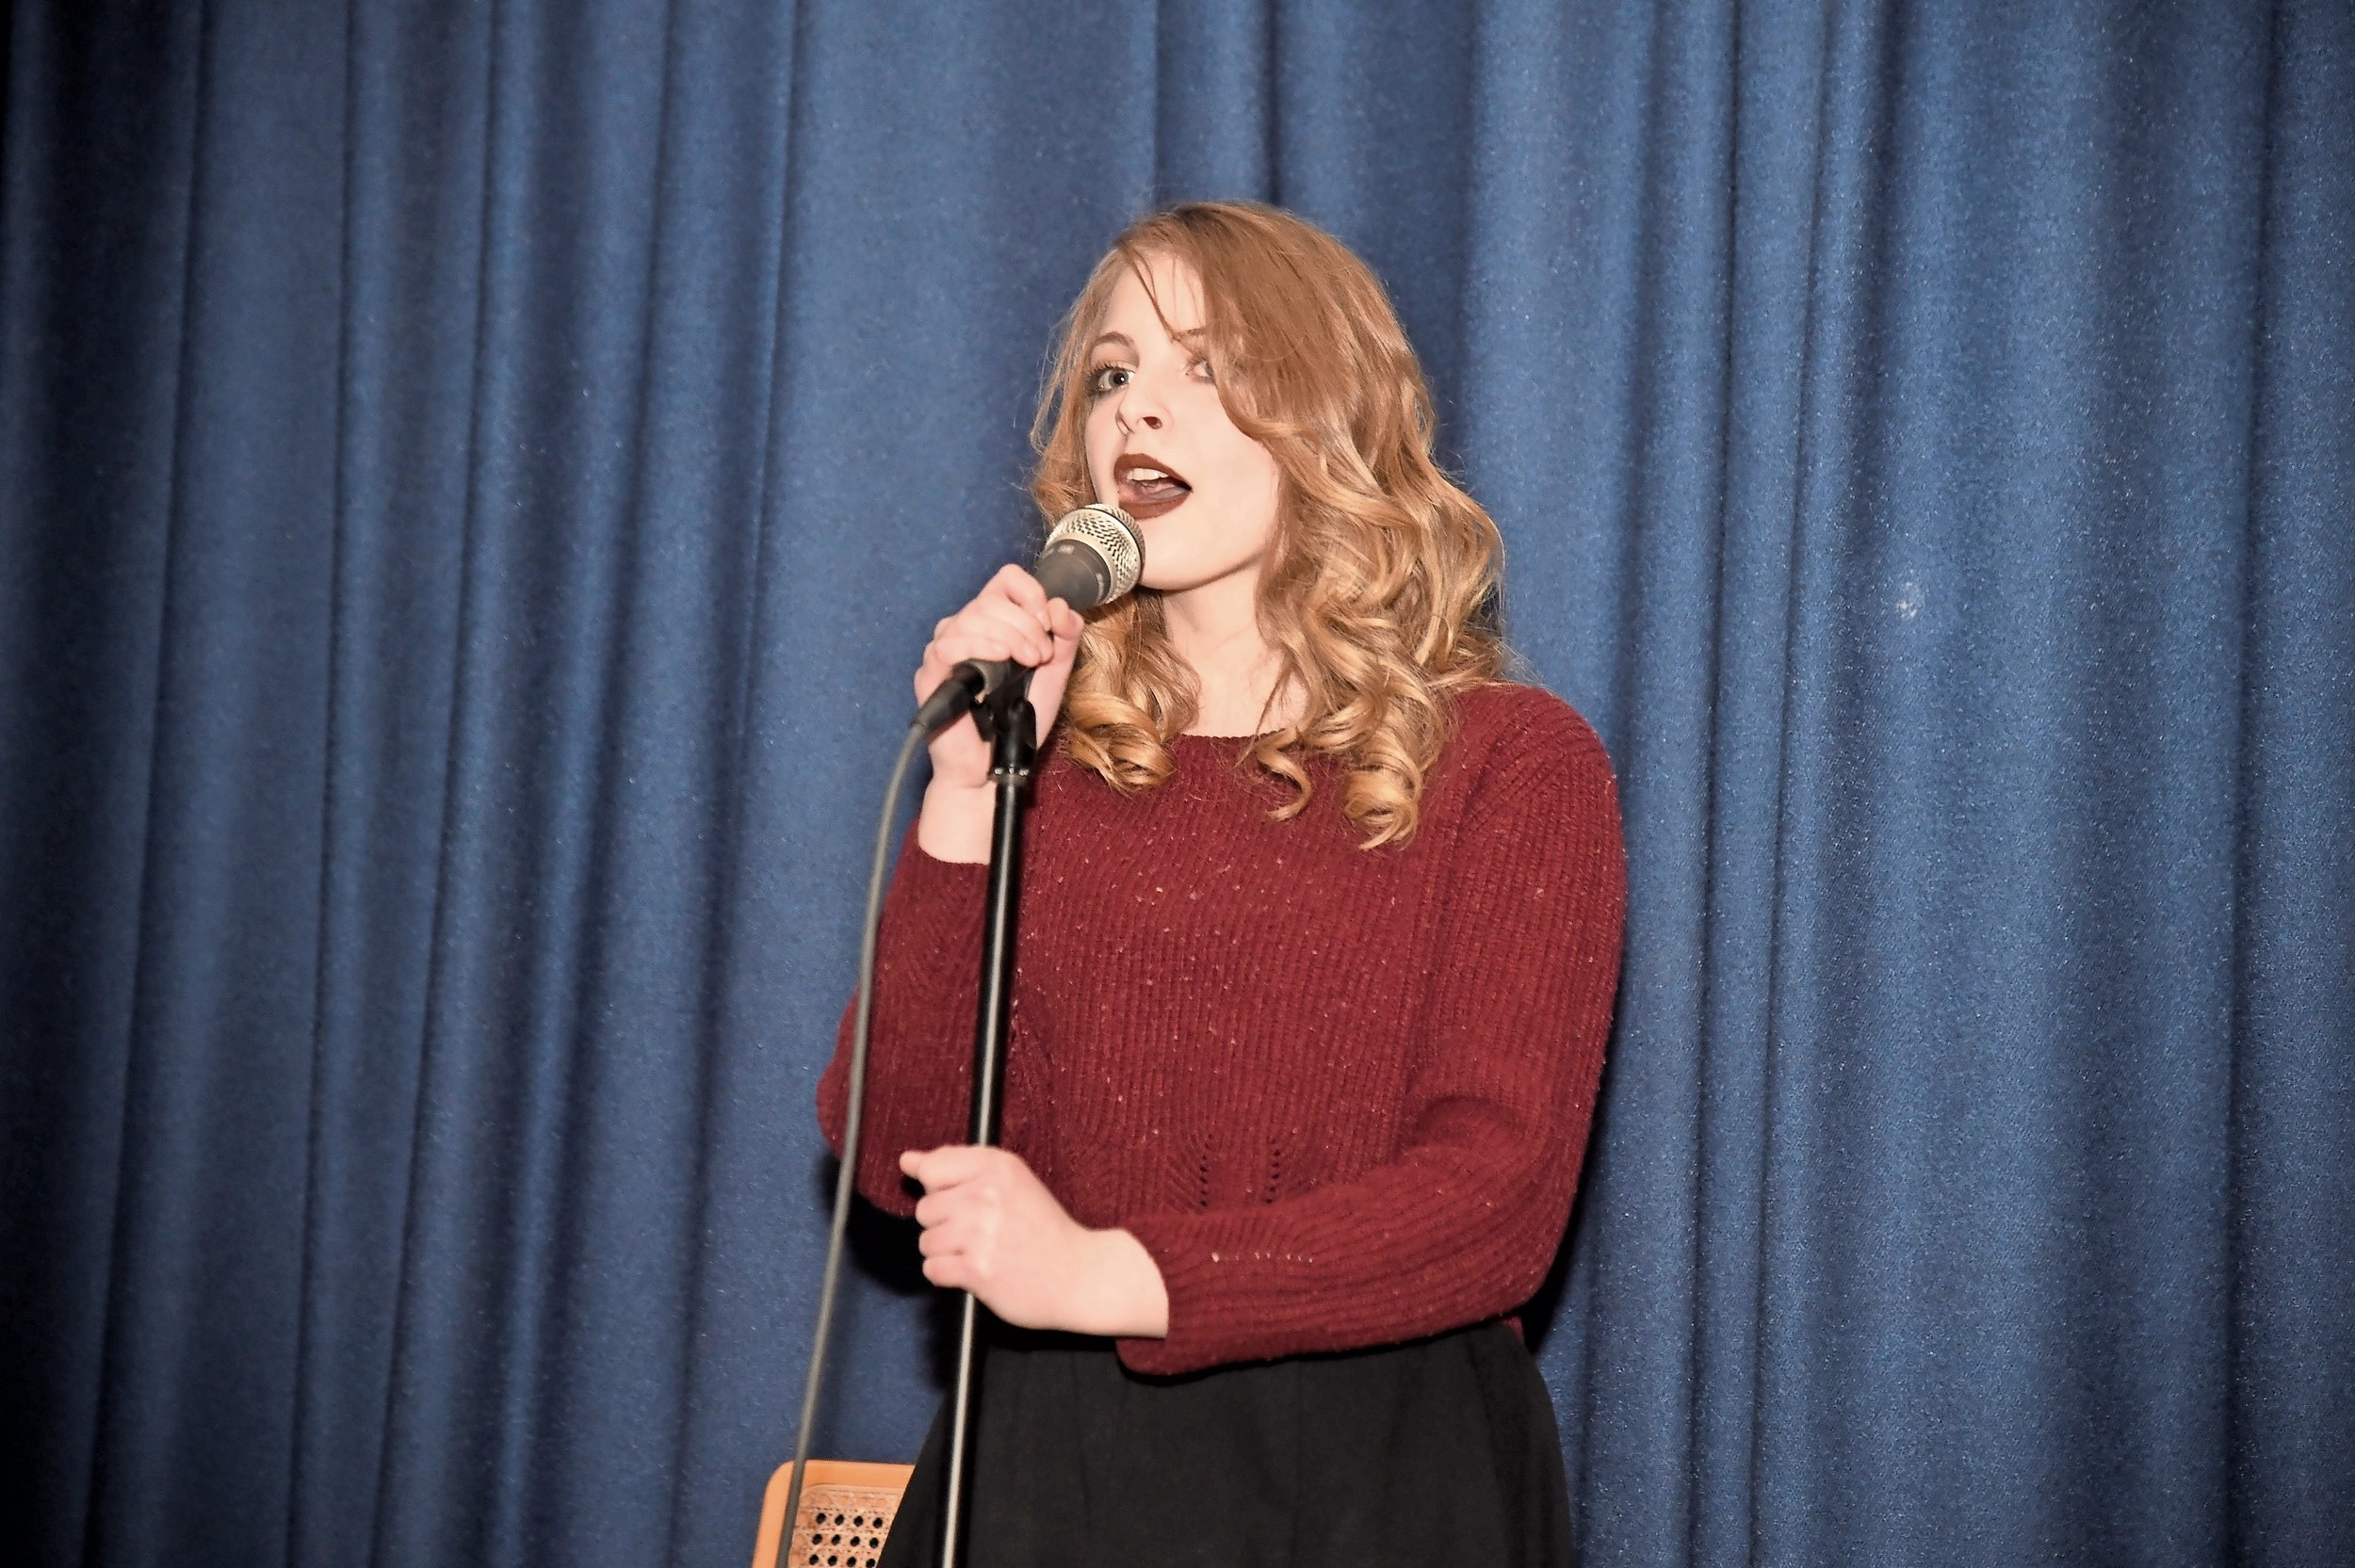 Jordan Cooney entertained the guests.